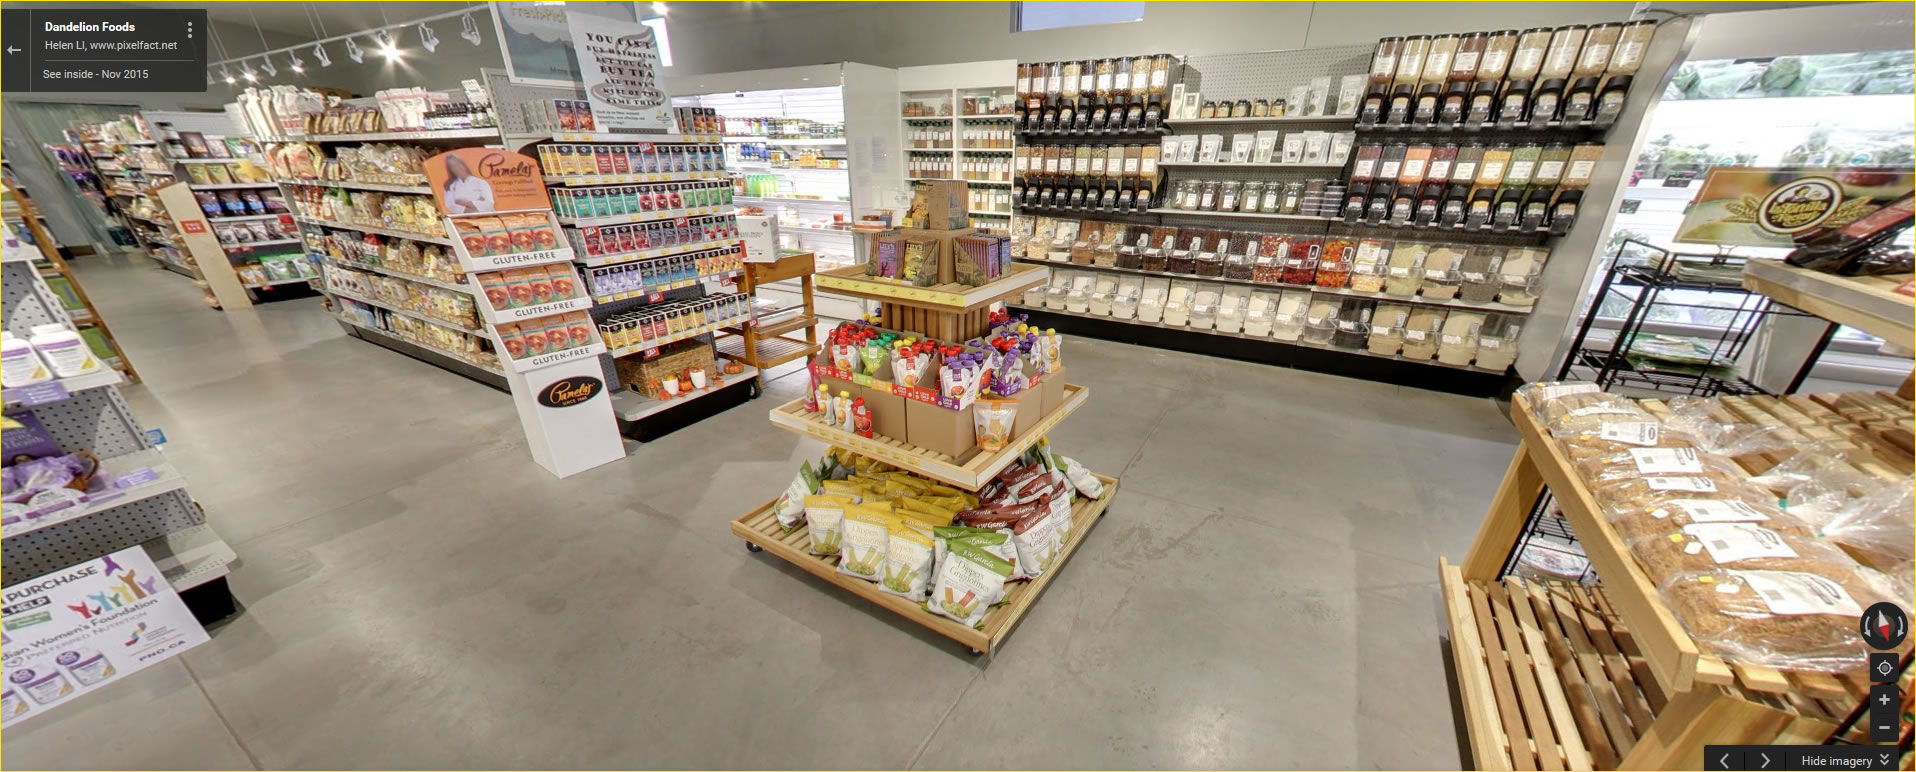 Click for a Google virtual tour of Dandelion Foods